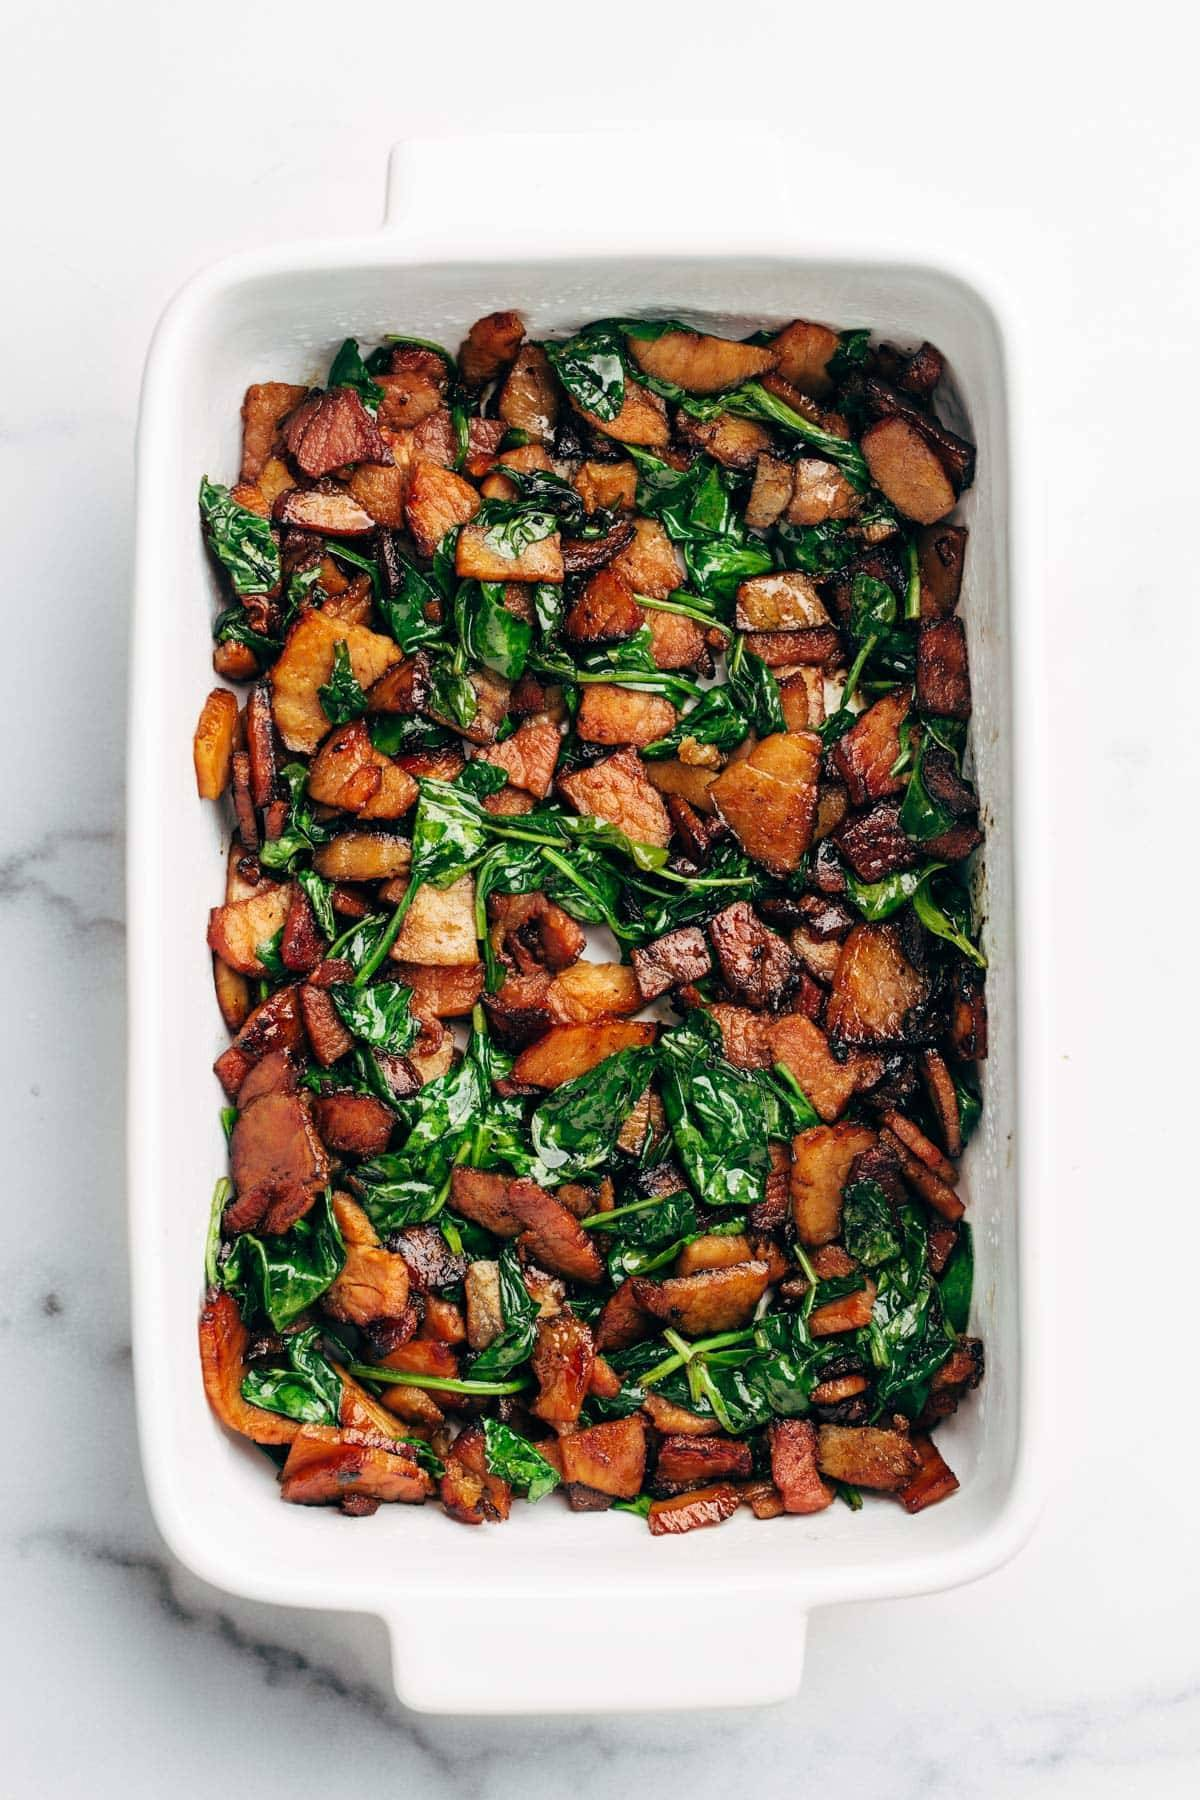 Ham and spinach and baking pan.